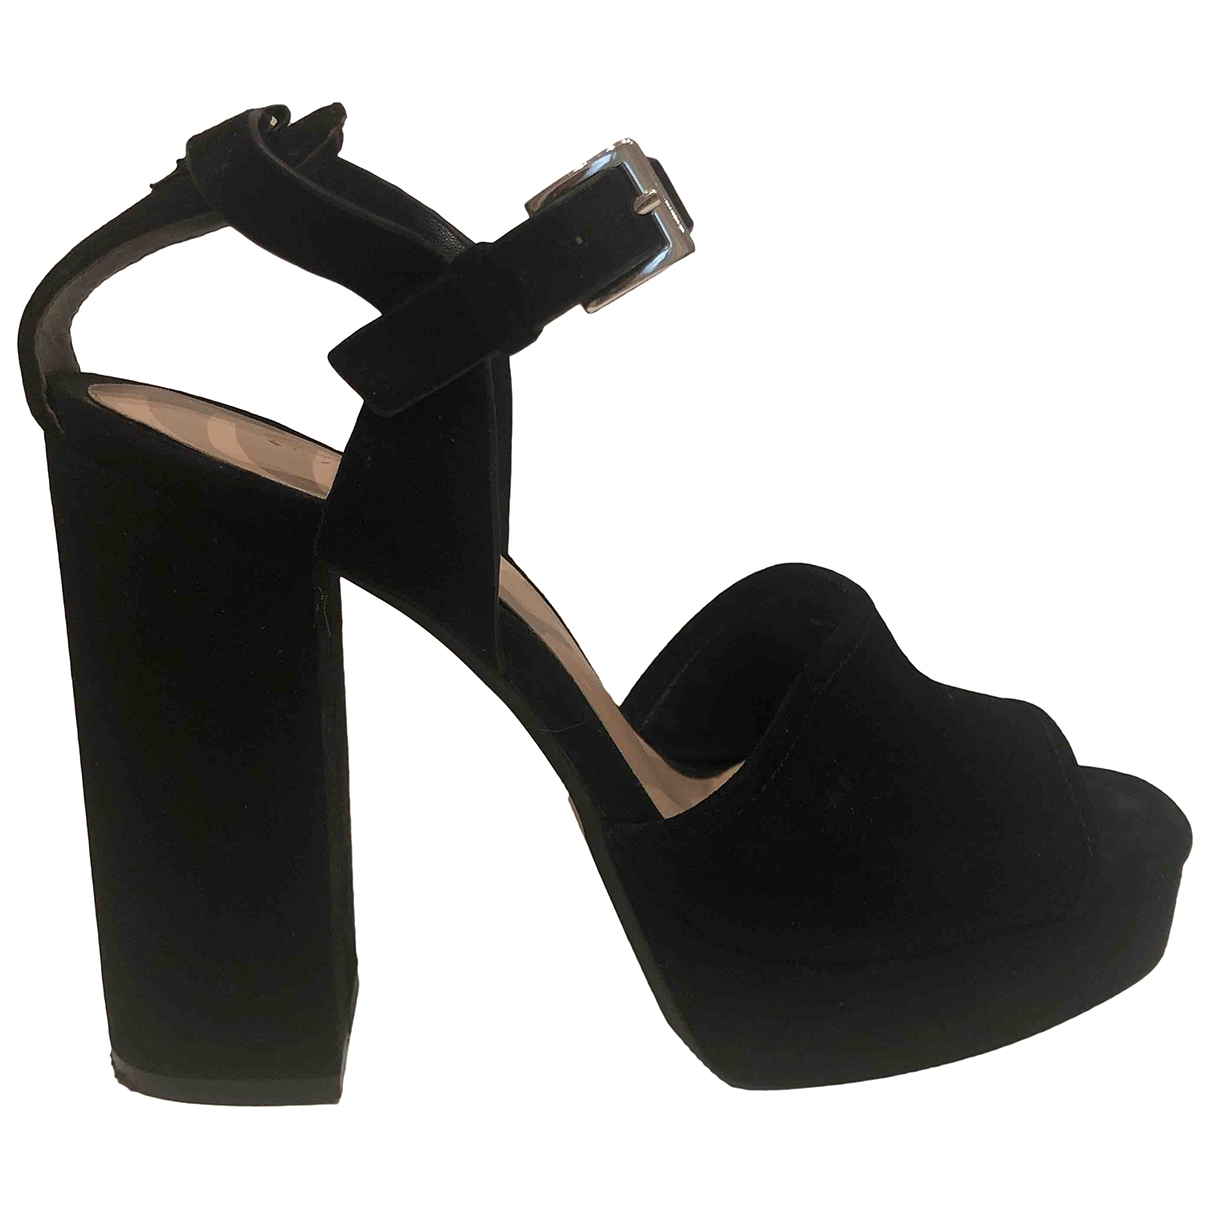 Zara \N Black Suede Heels for Women 37 EU